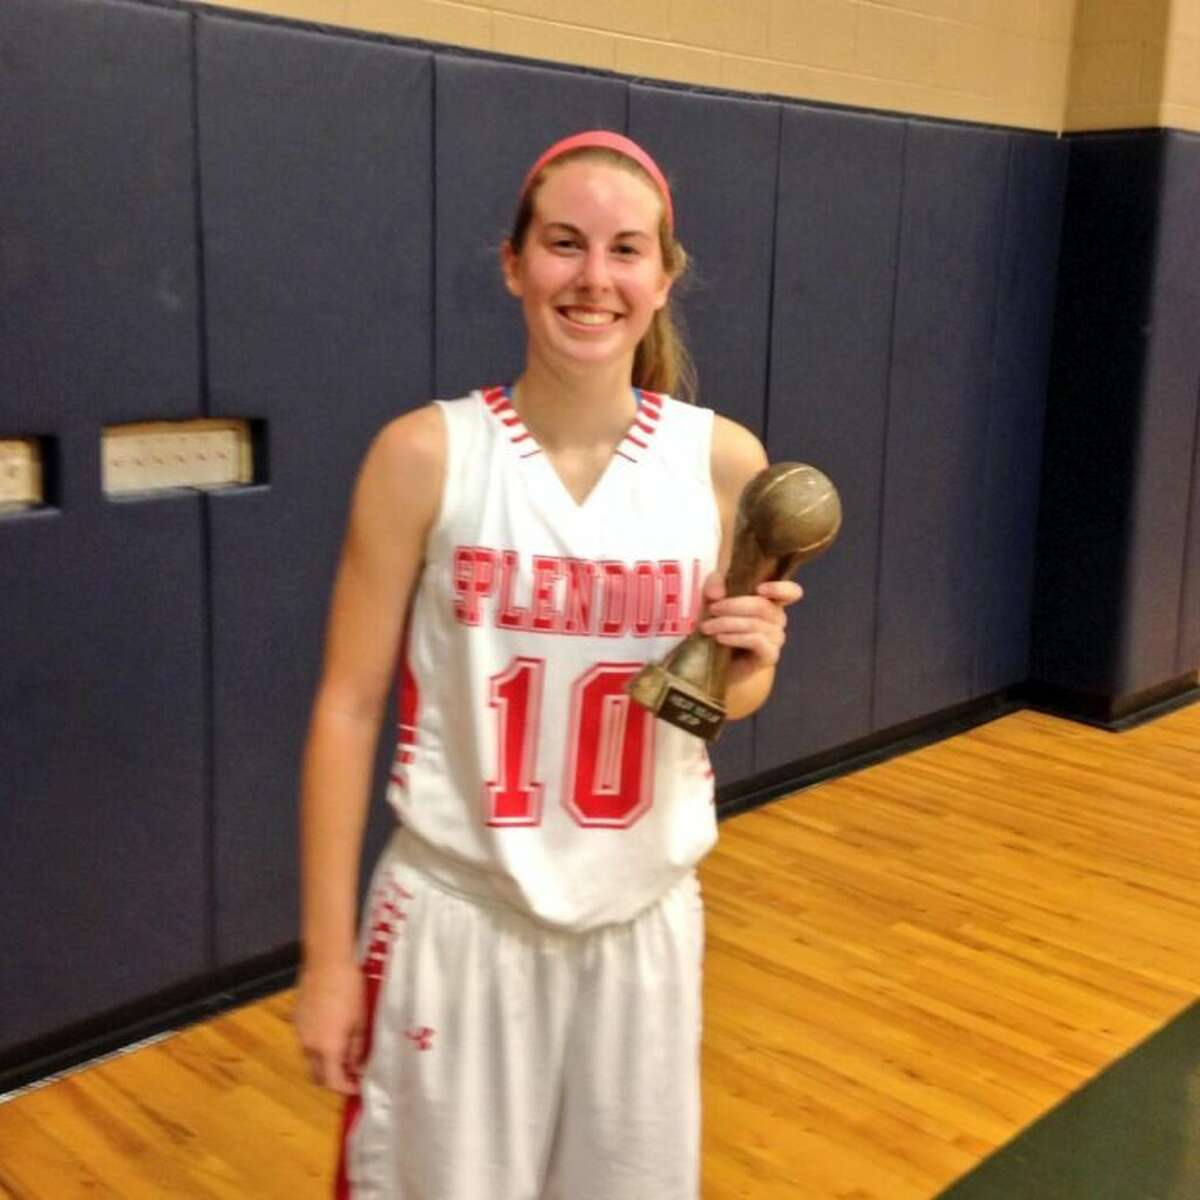 Splendora's Emily Richardson was named the MVP of the James White Memorial Classic All-Star game after scoring seven points for the West team in a victory.